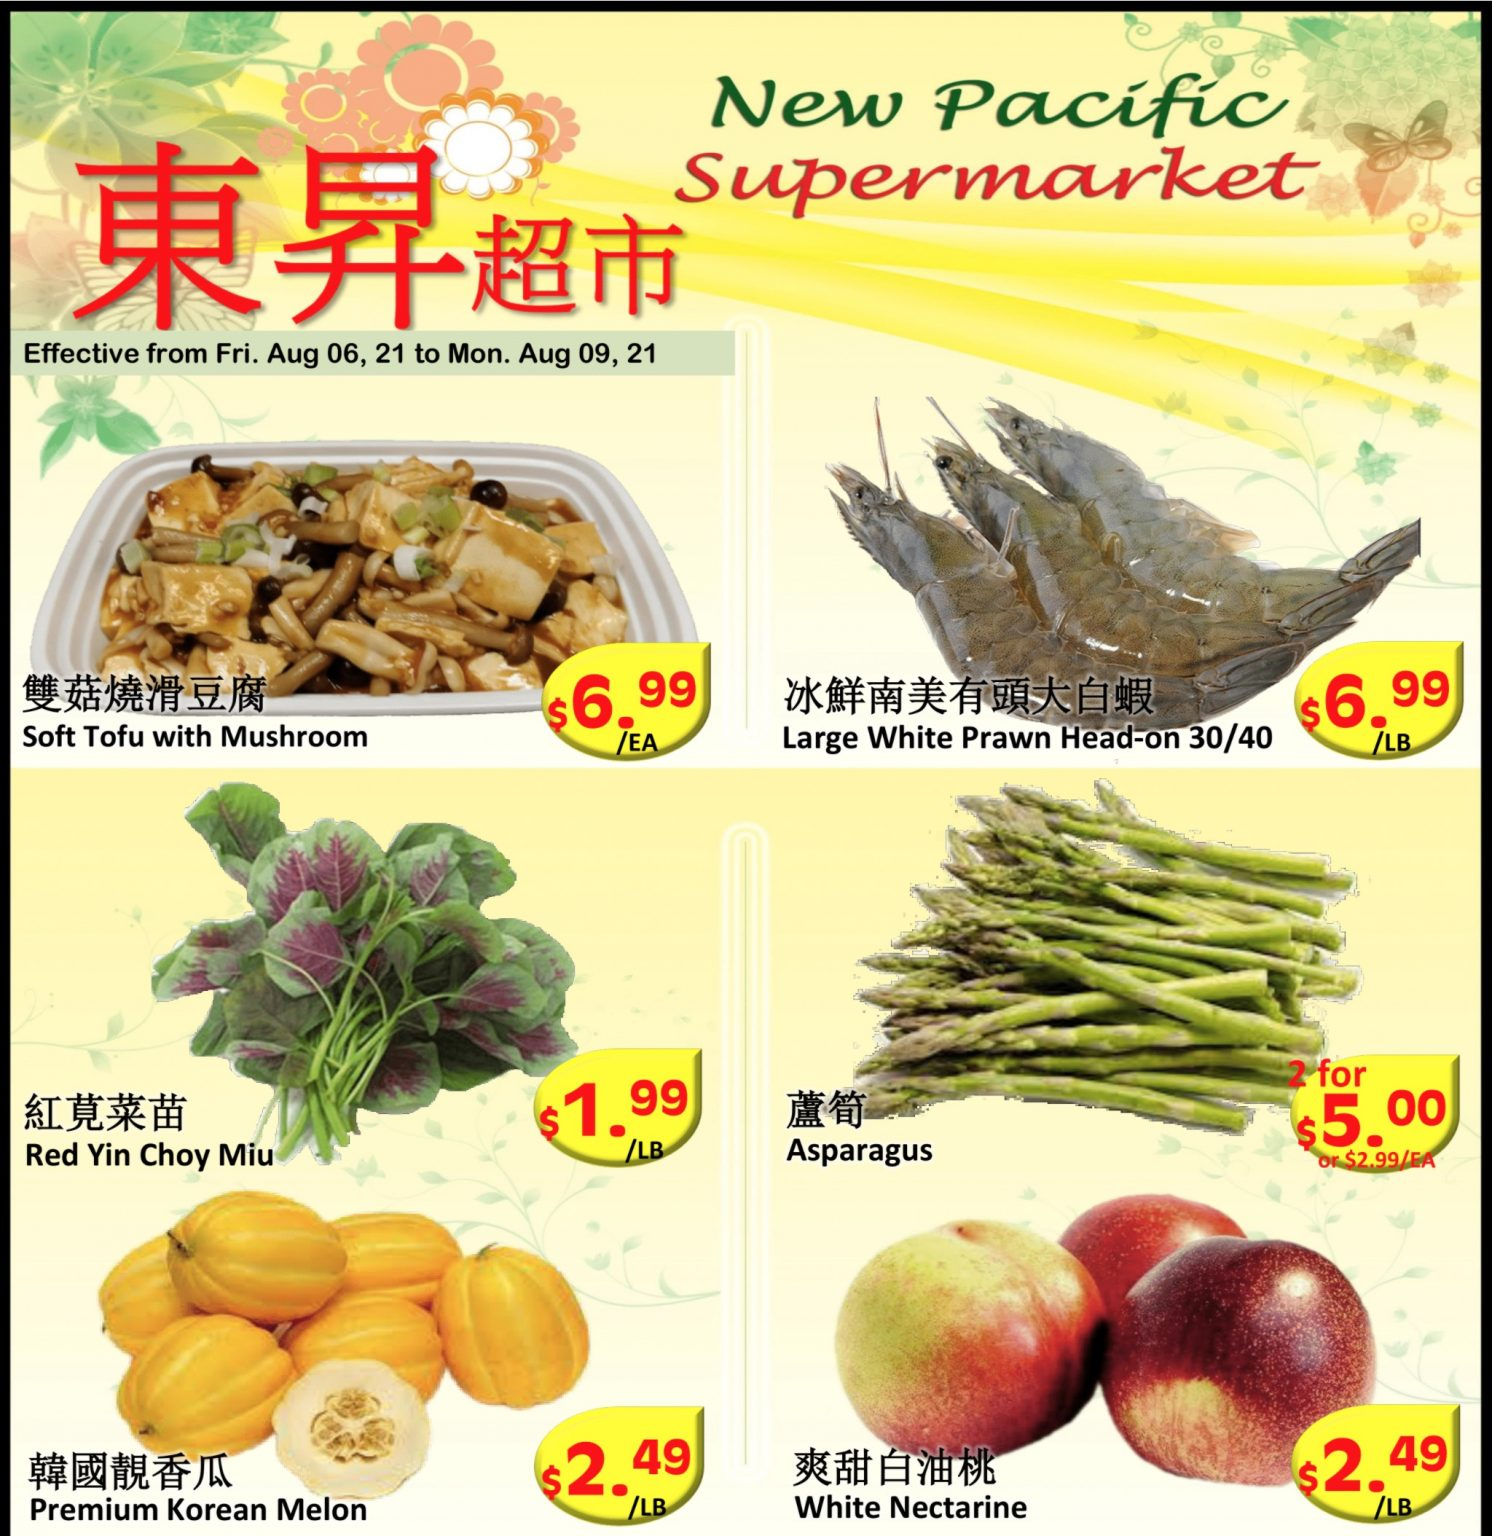 New Pacific Supermarket Flyer   Aug 6